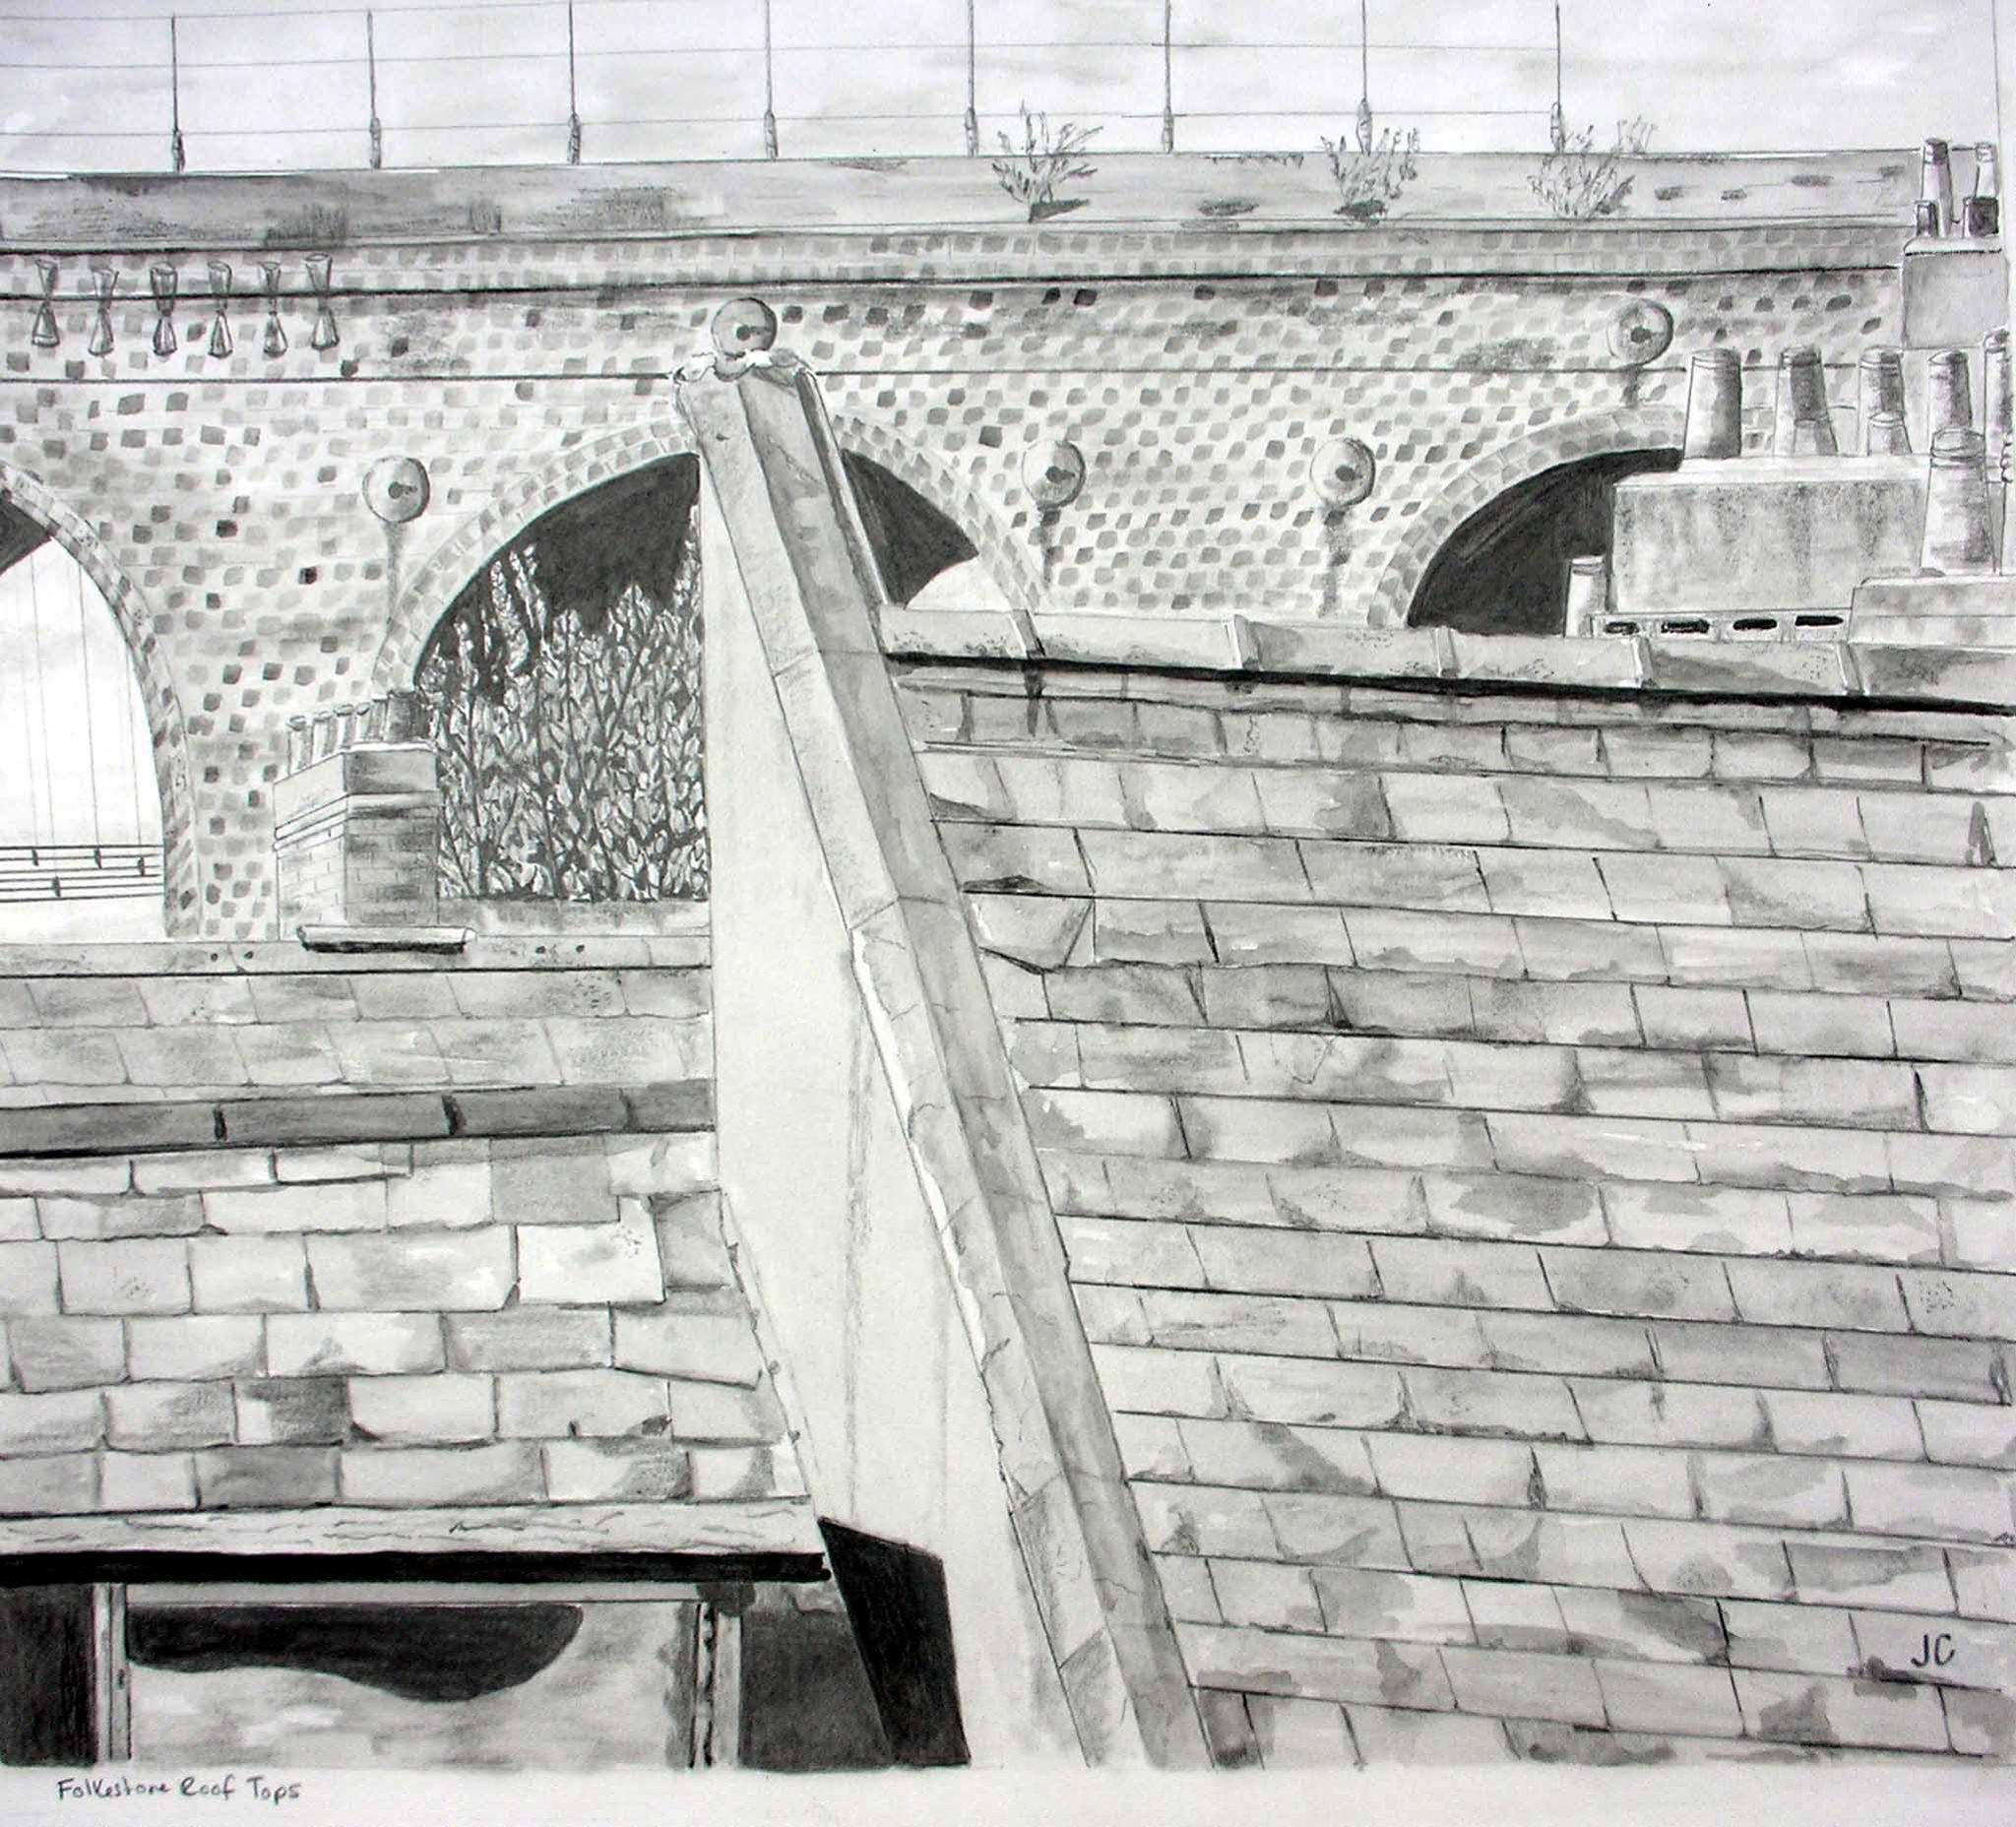 Pencil Sketch by Janice Carrera of Railway Viaduct